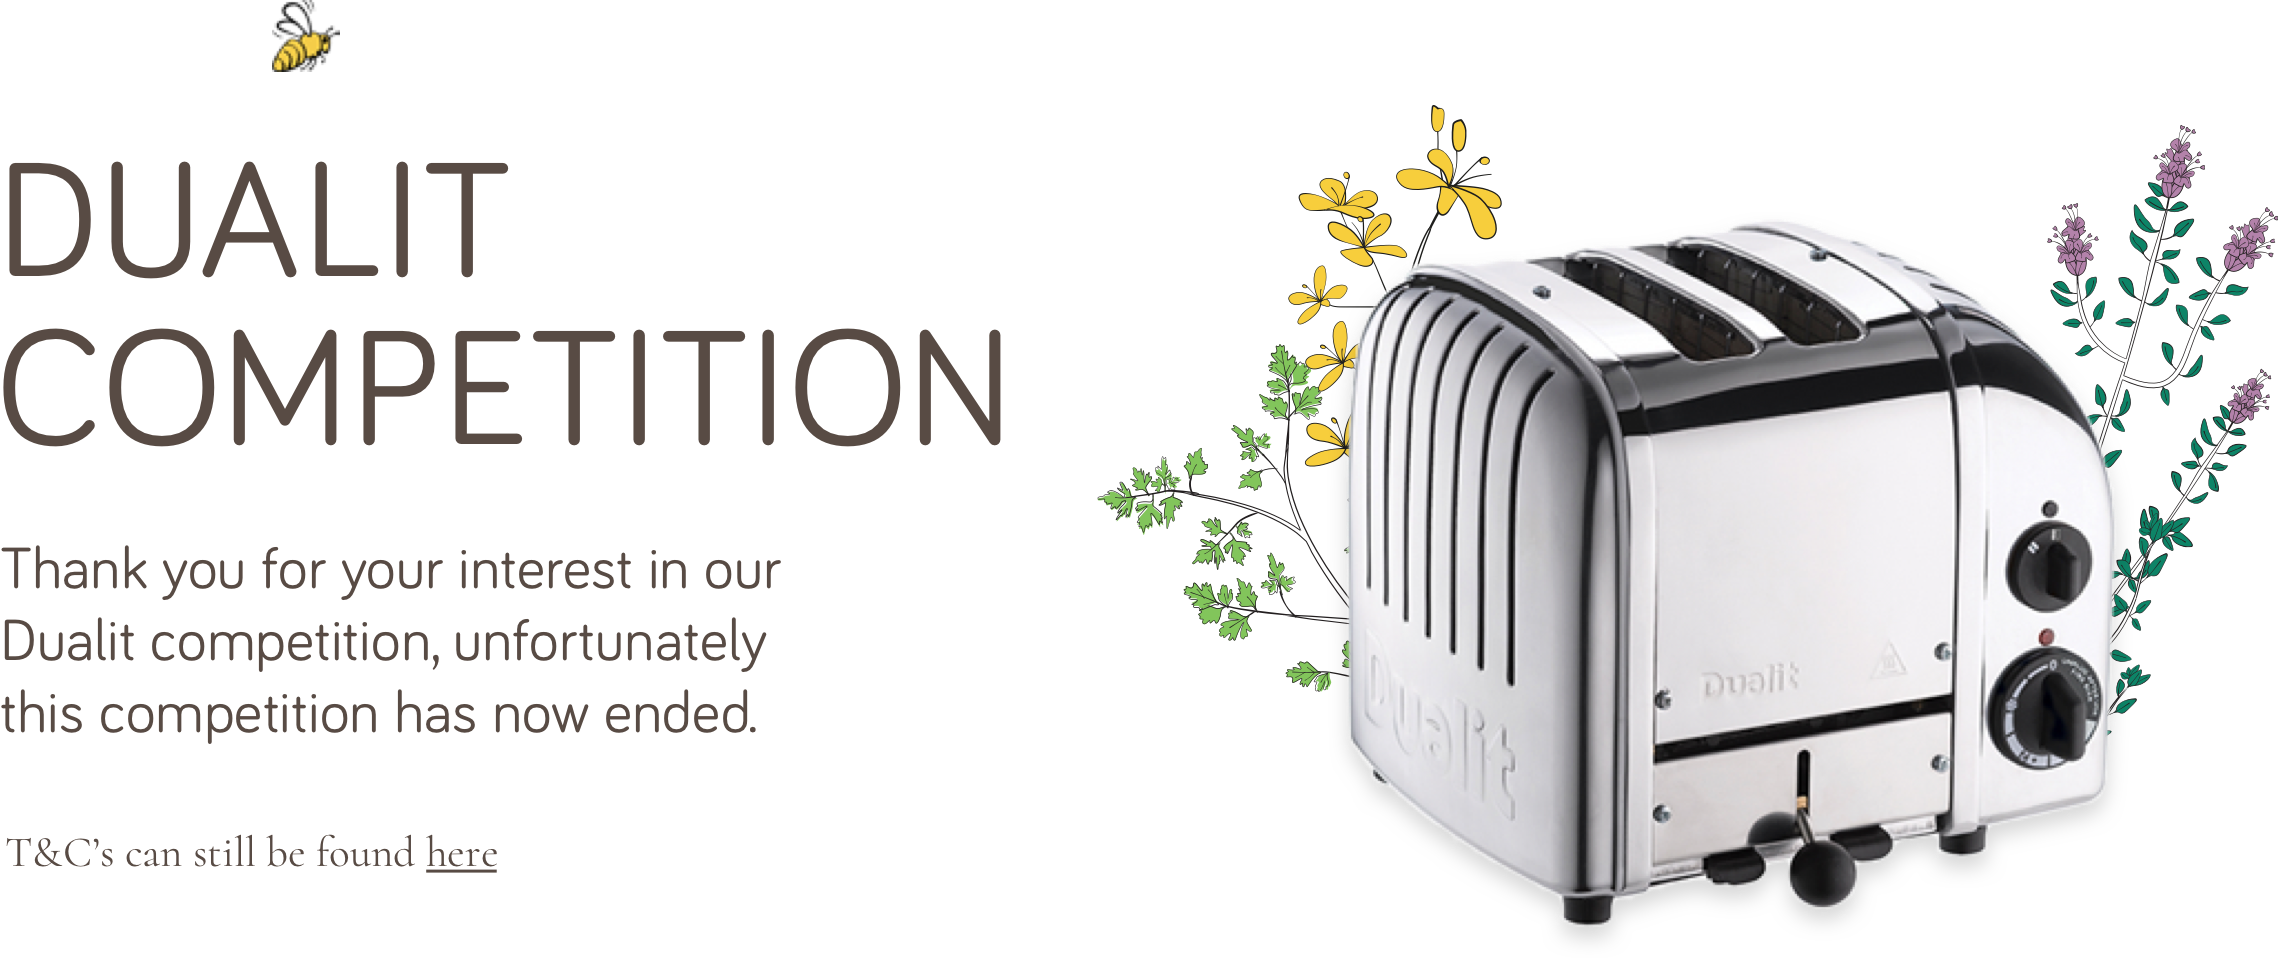 Thank you for your interest in our Dualit Toaster competition, unfortunately this competition has now ended.